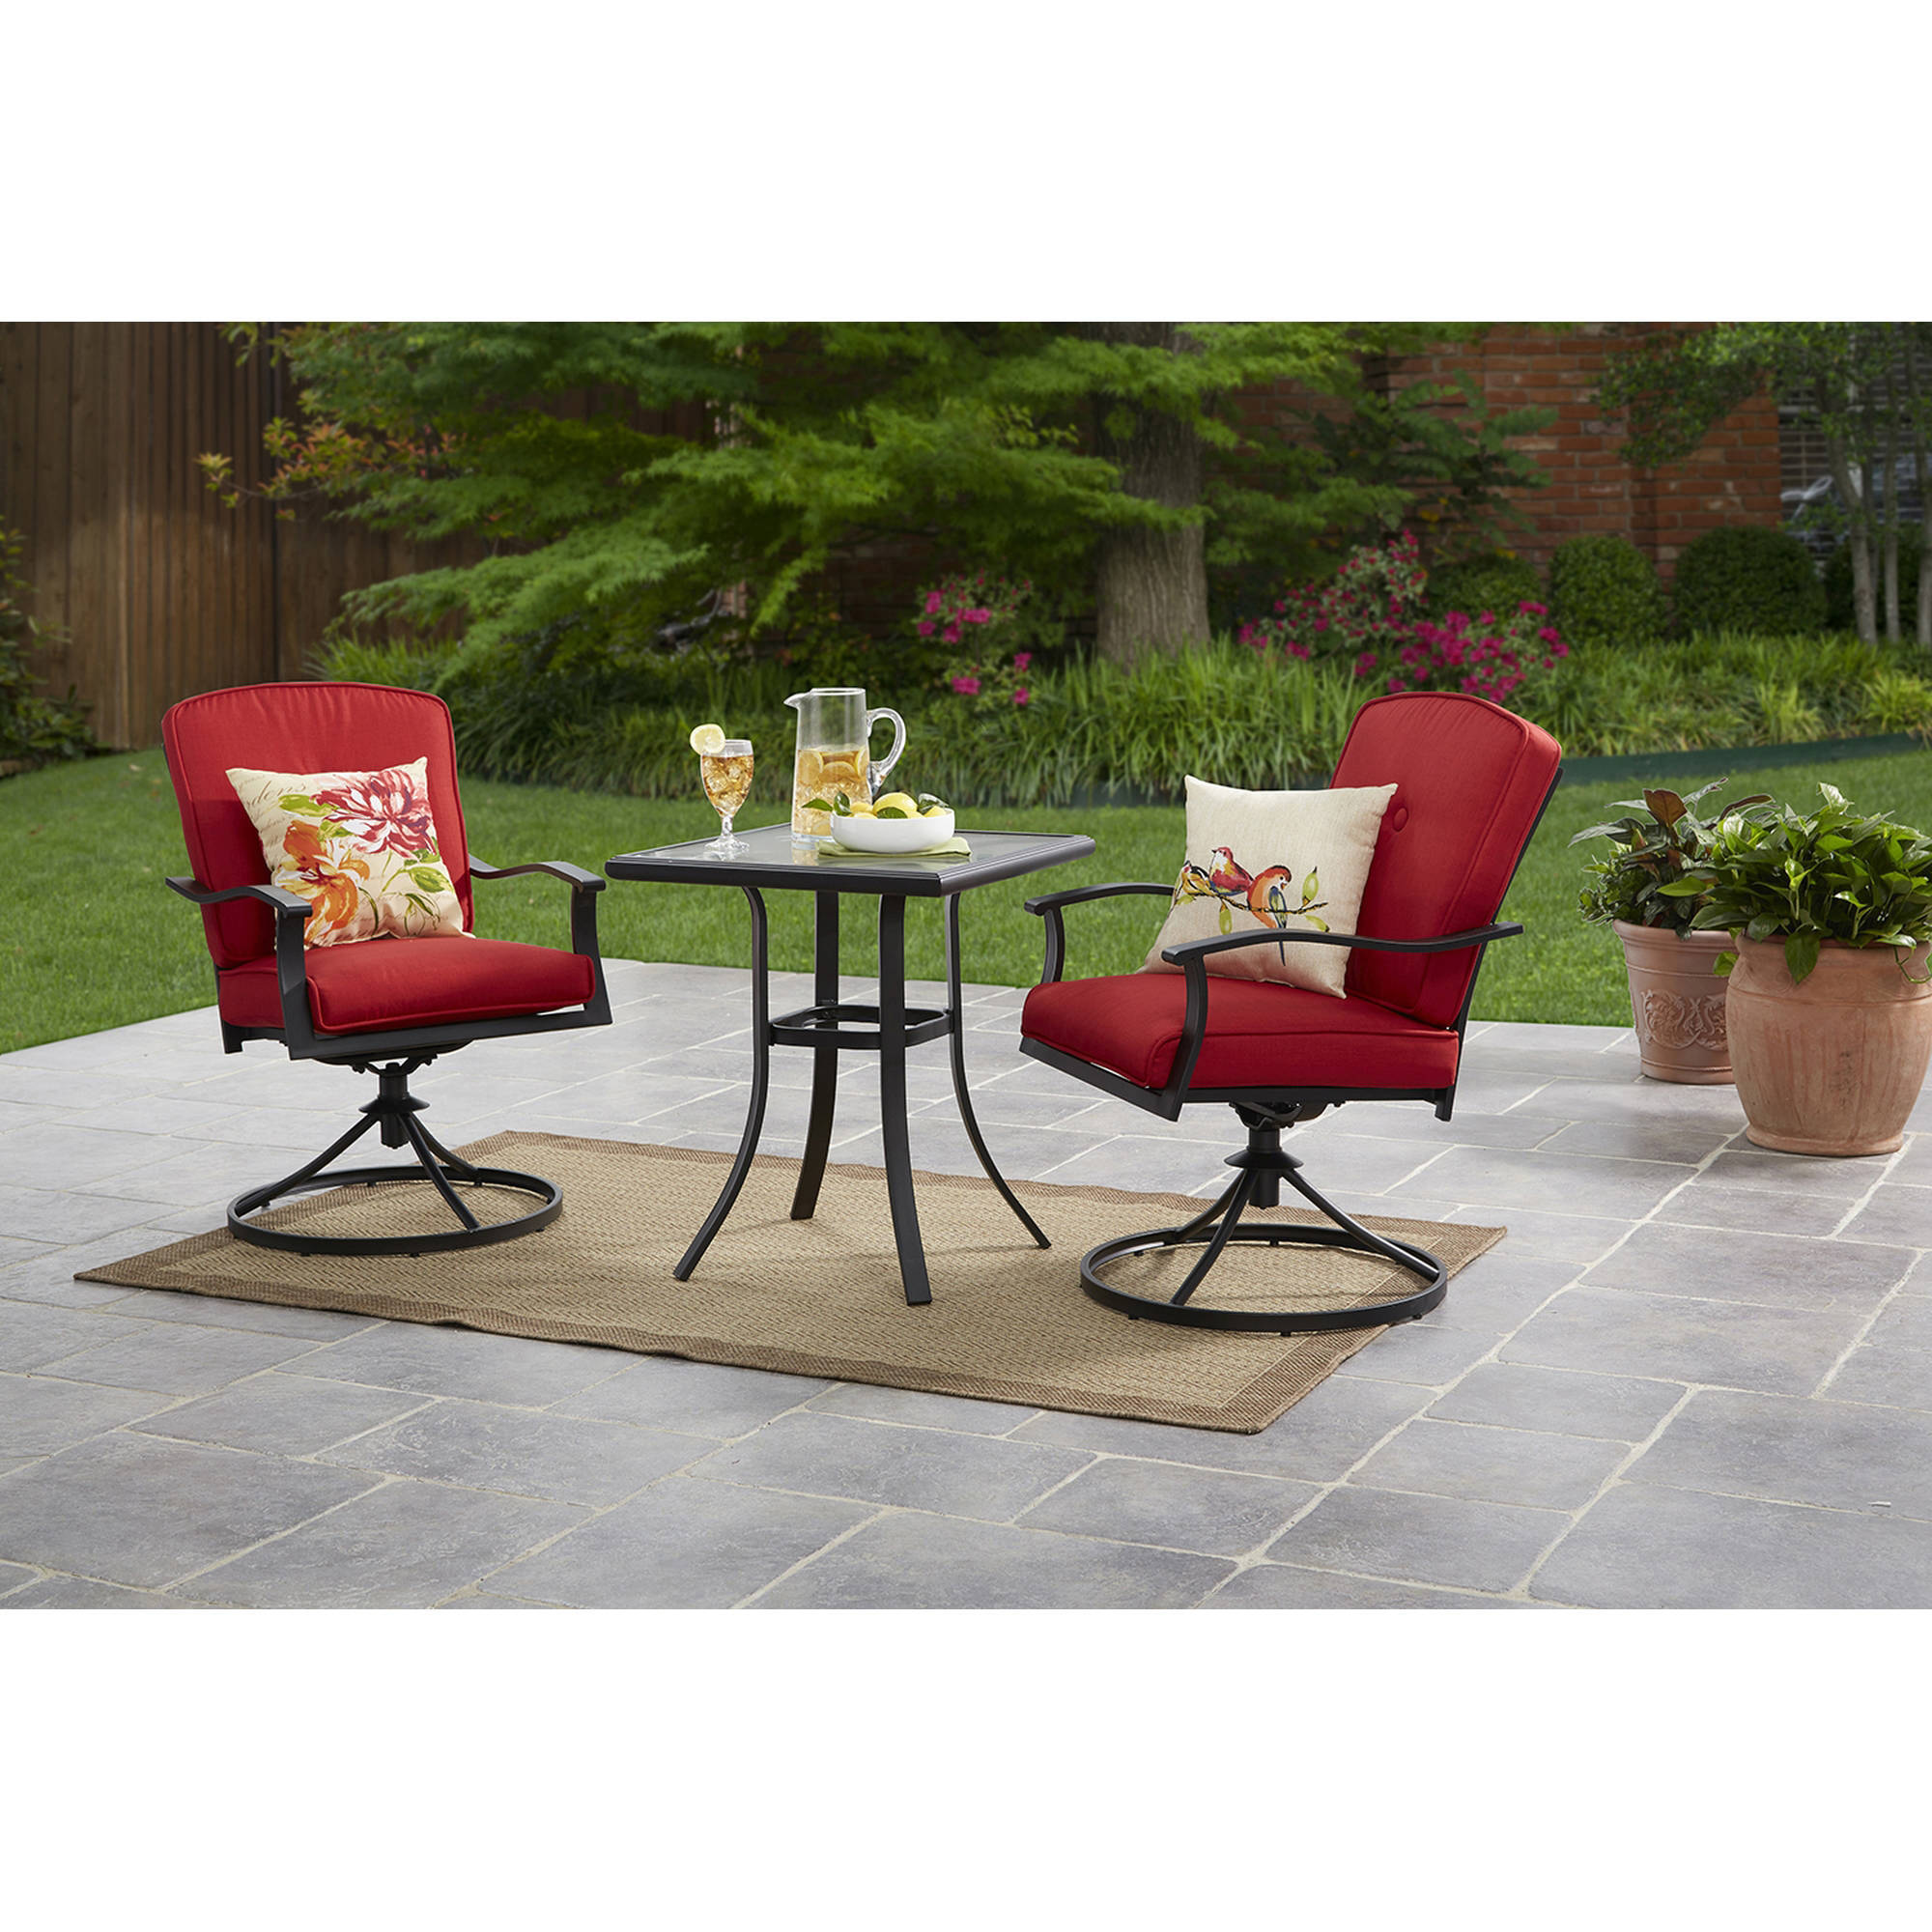 Mainstays Belden Park 3-Piece Bistro Set